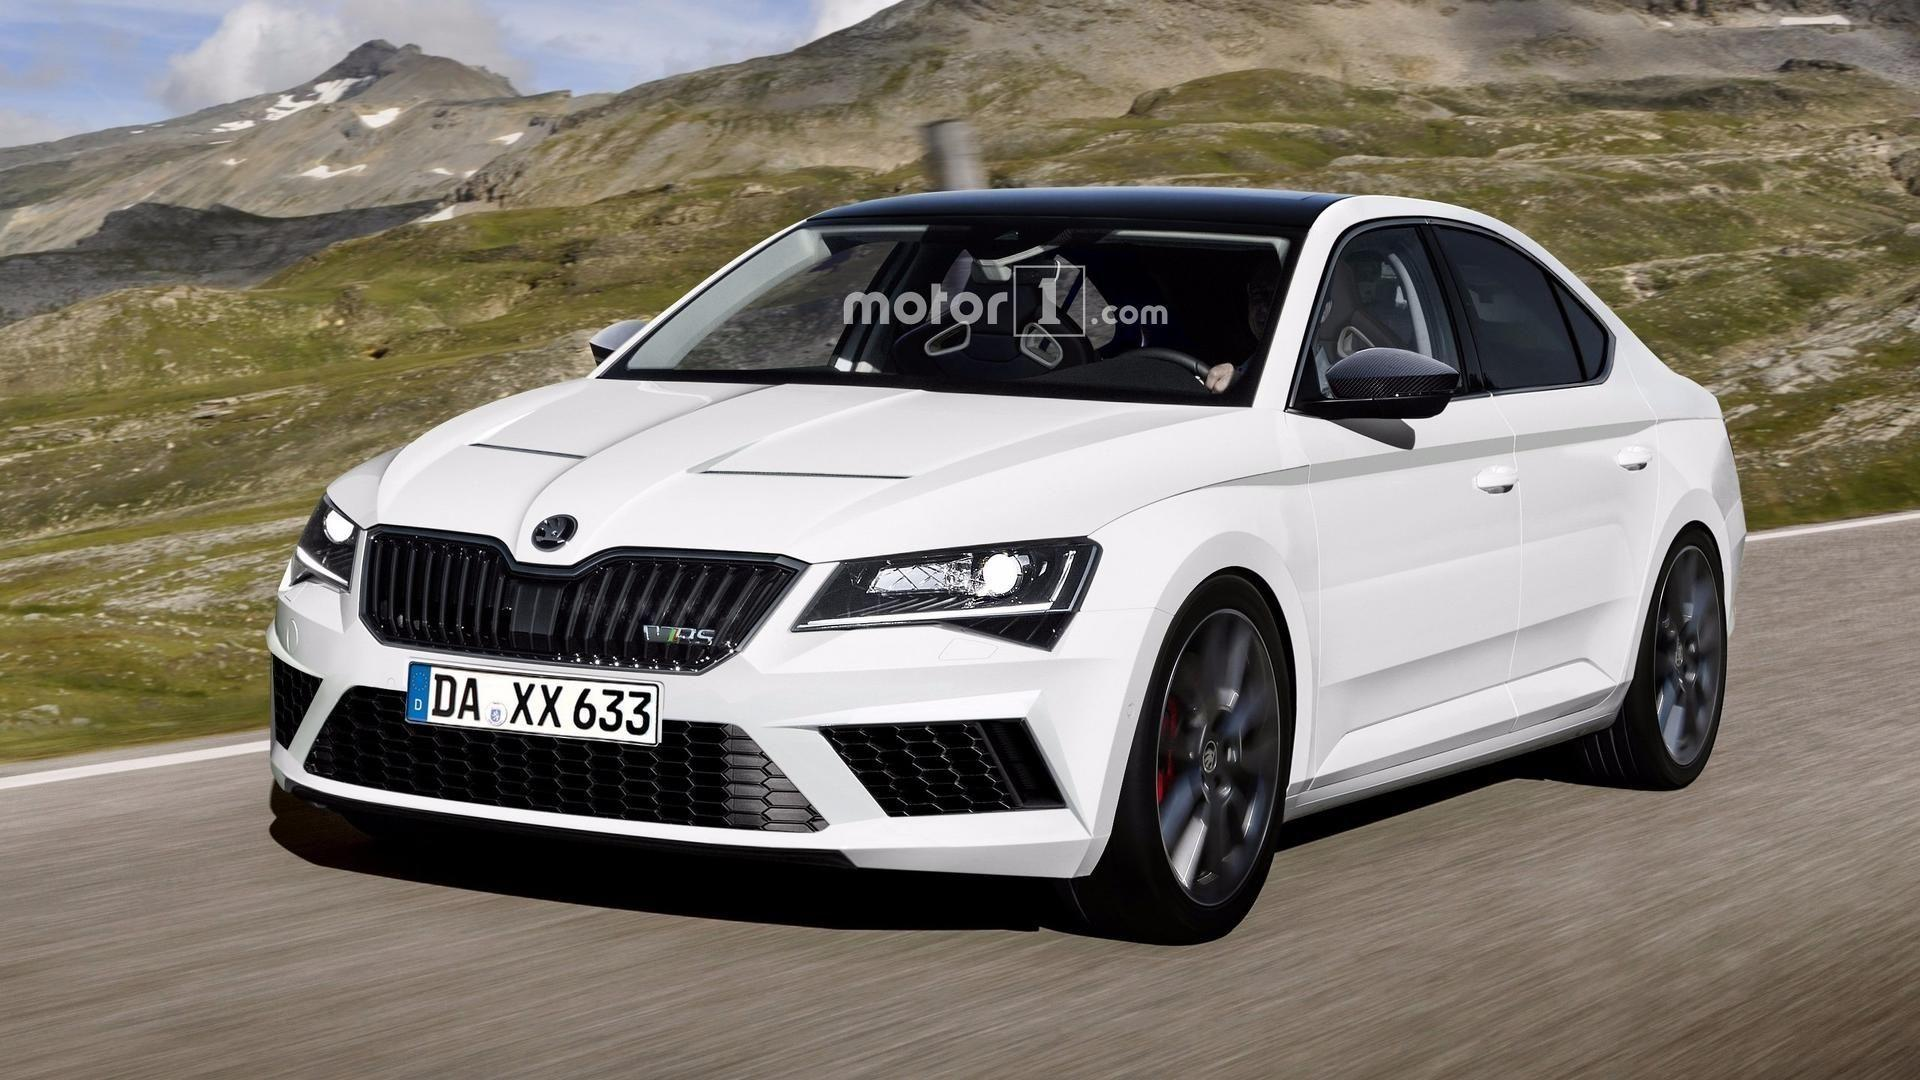 The Skoda Octavia Vrs 2019 Price, Design and Review